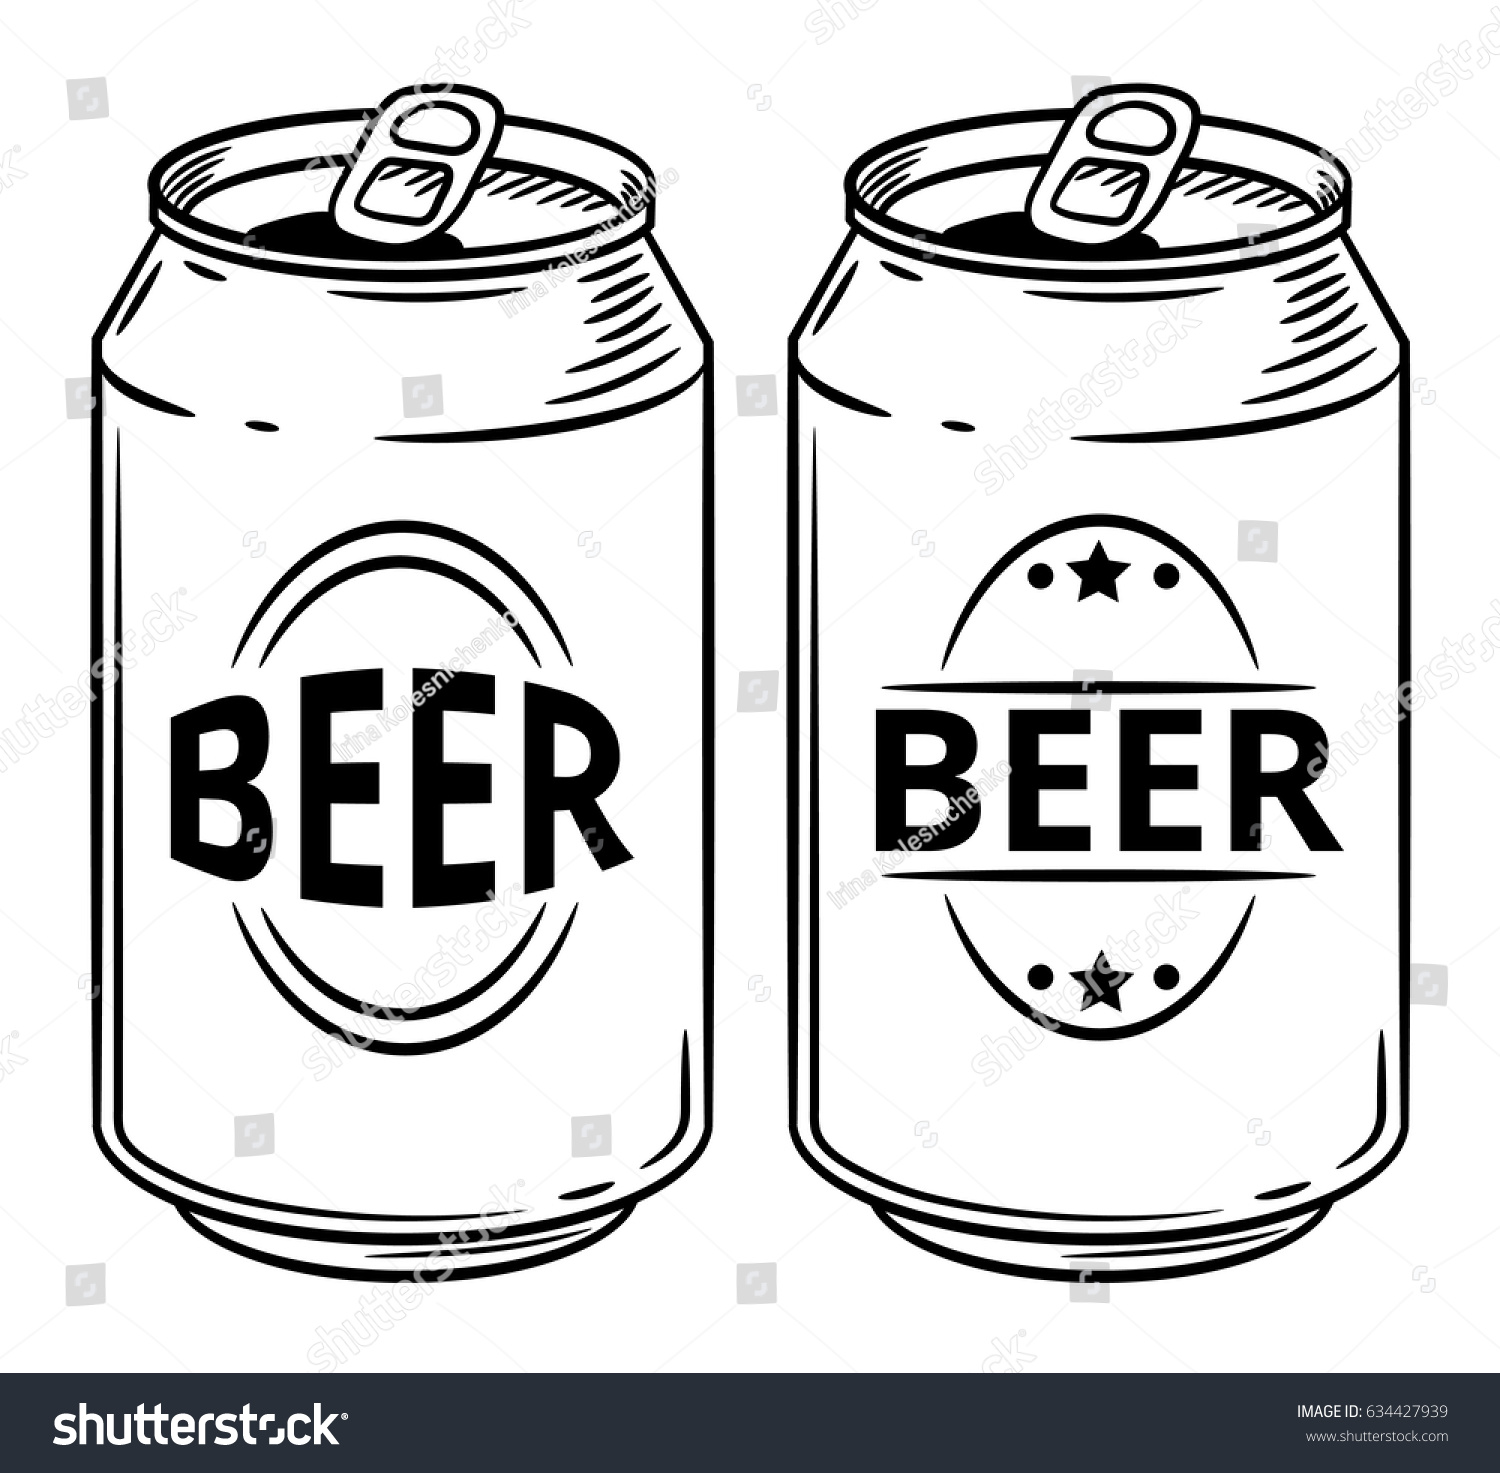 vector illustration beer can isolated on stock vector royalty free rh shutterstock com Beer Can Clip Art beer can vector art